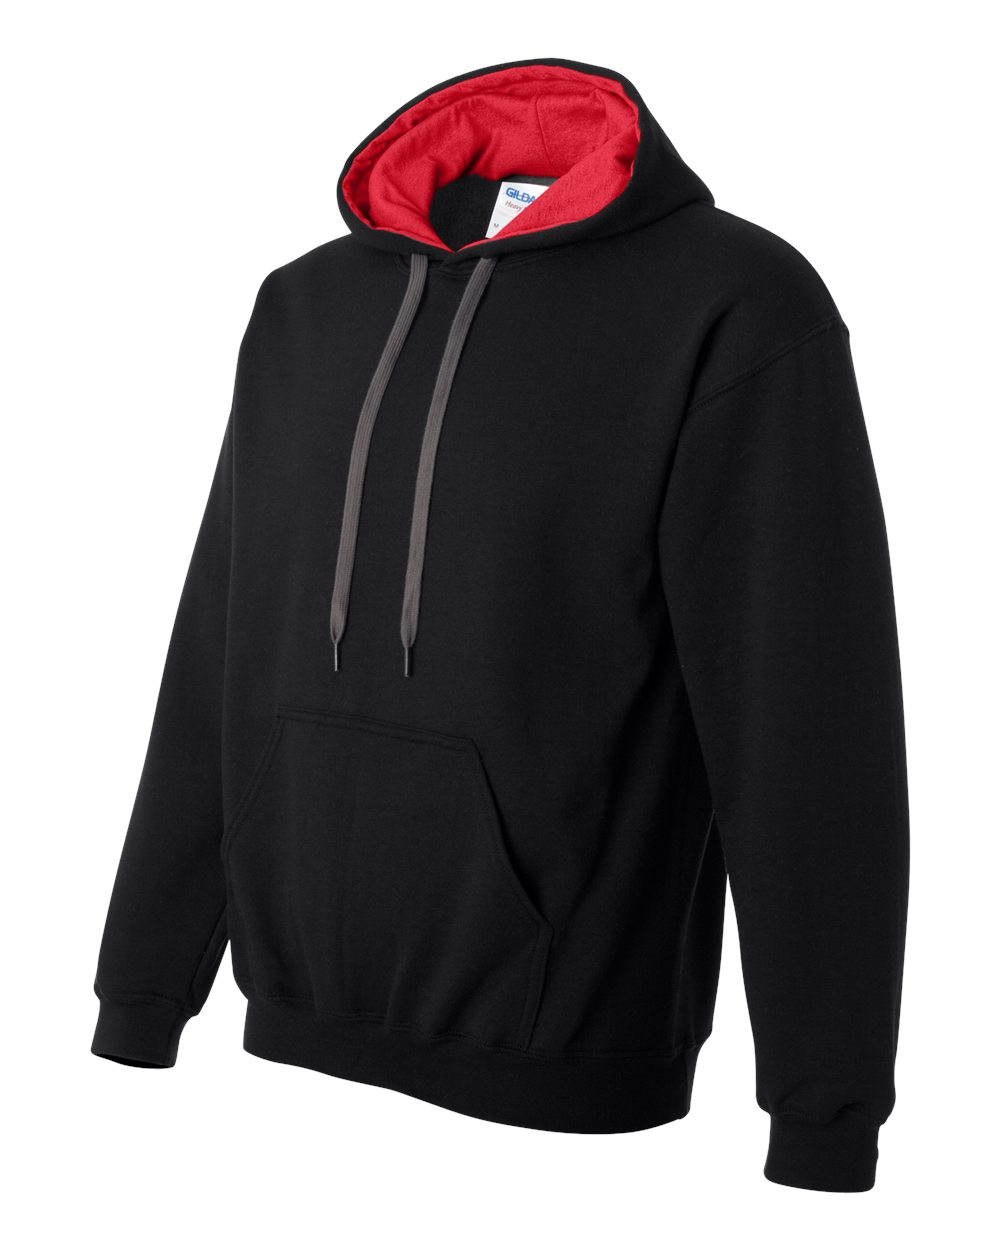 Gildan Heavy Blend Contrasted Hoodie GI185C00 Black - Red